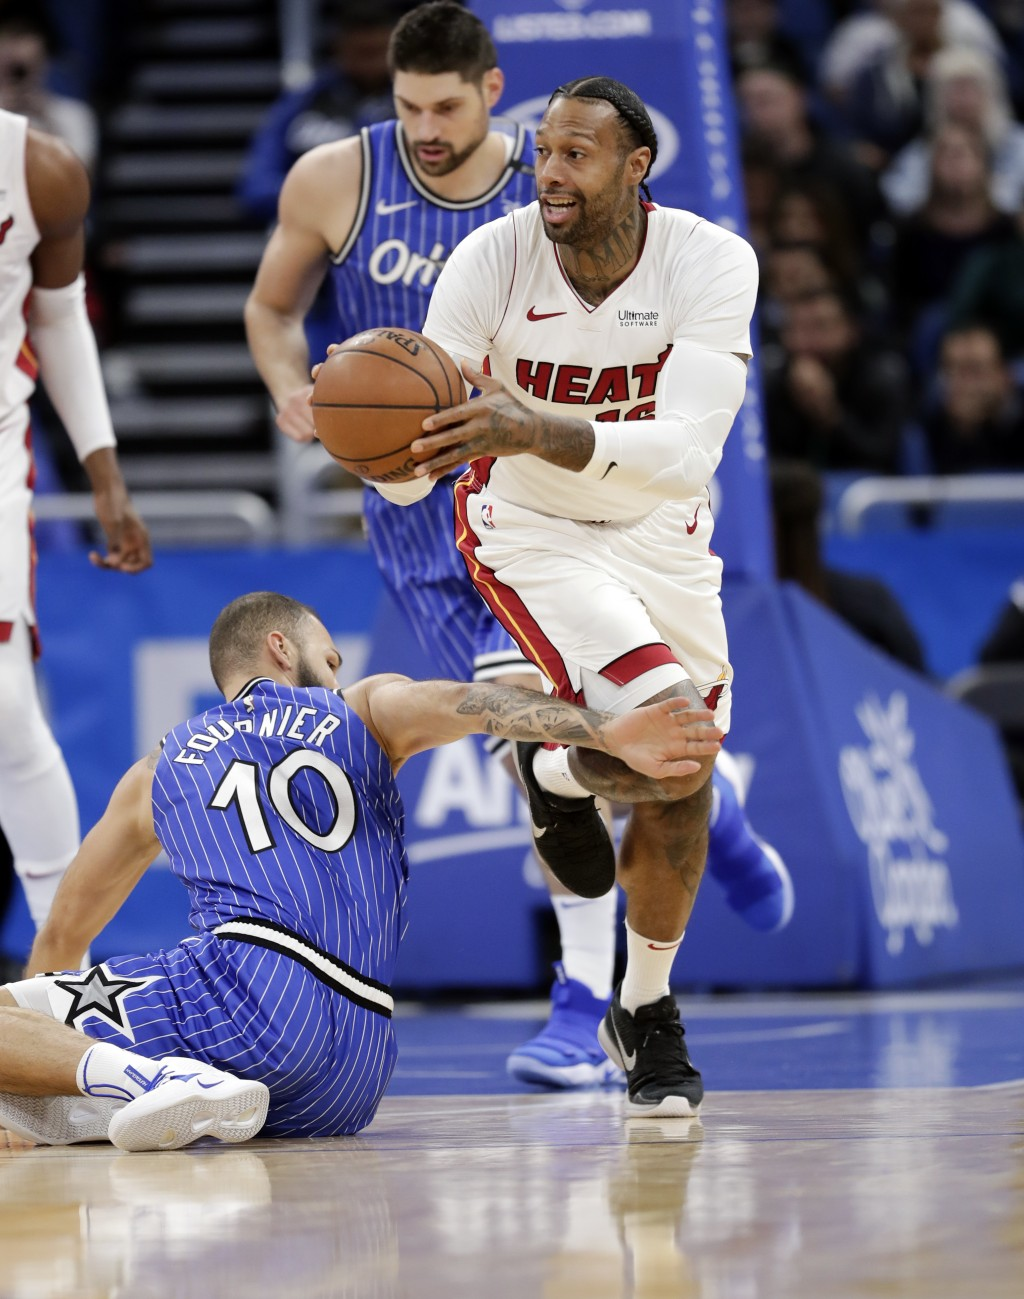 Miami Heat's James Johnson, right, moves past Orlando Magic's Evan Fournier (10) after scooping up a loose ball during the first half of an NBA basket